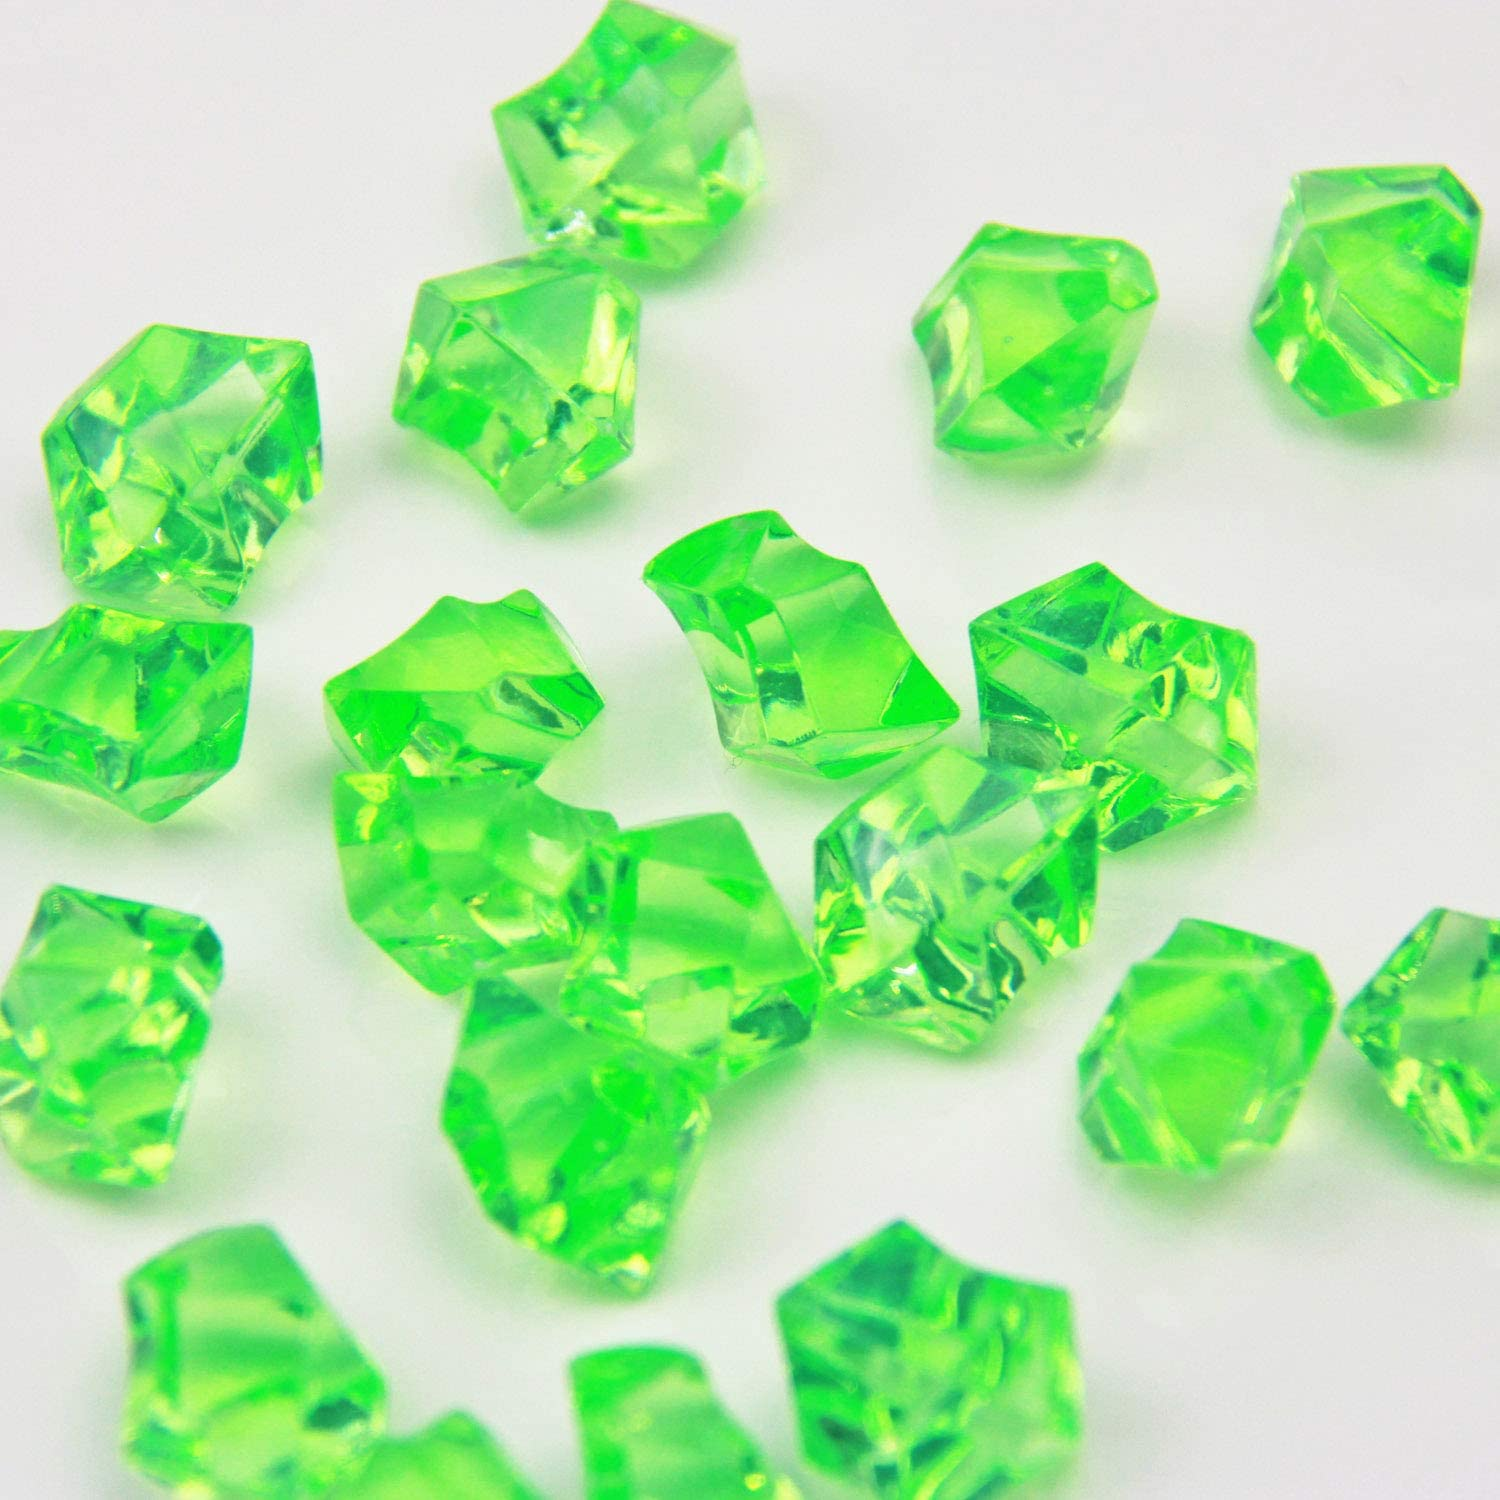 Apple Green Acrylic Ice Rock Crystals Treasure Gems for Table Scatters, Vase Fillers, Wedding, Banquet, Party, Event, Birthday Decoration (Apple Green, 150)